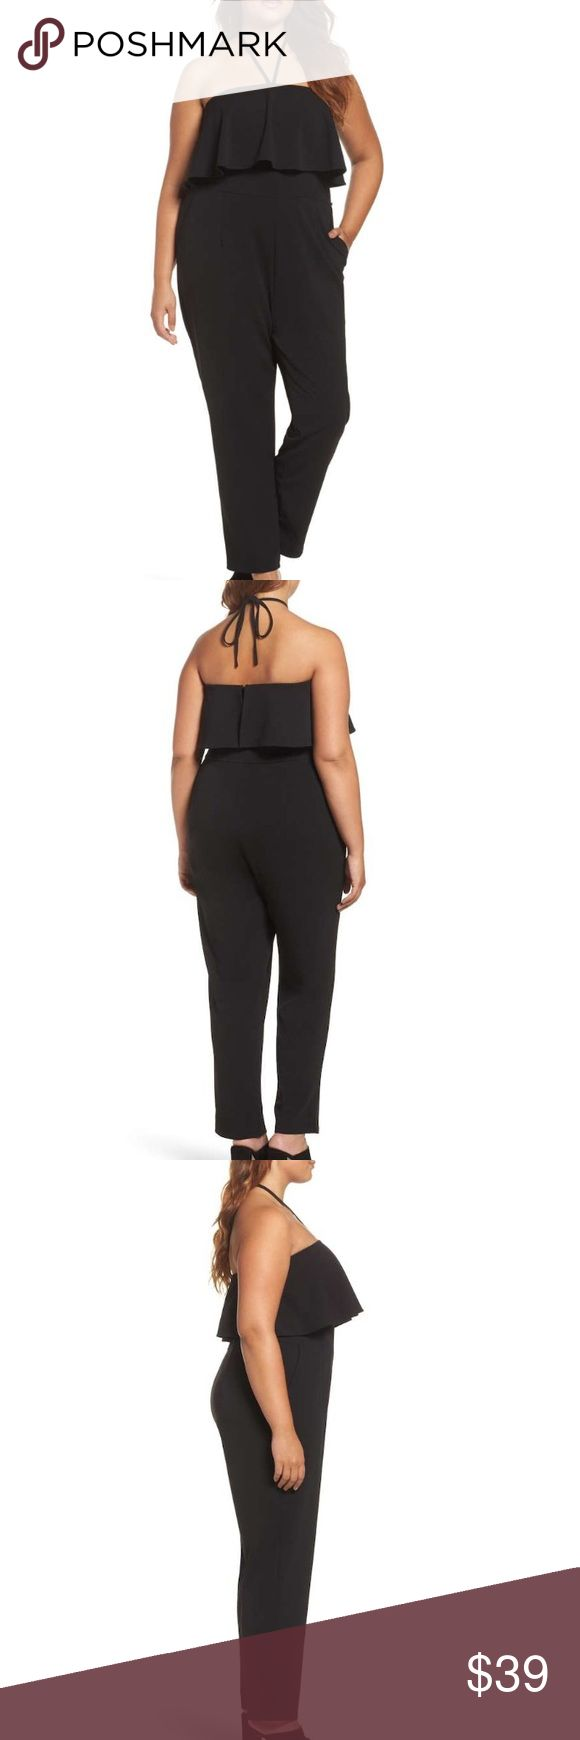 ❤️💗💜Ruffle halter neck black jumpsuit New arrival💜Enjoy sexy styles which are appropriate and fun for plus-sized ladies. I really love the styling. No trades. Negotiable. Glamorous Pants Jumpsuits & Rompers